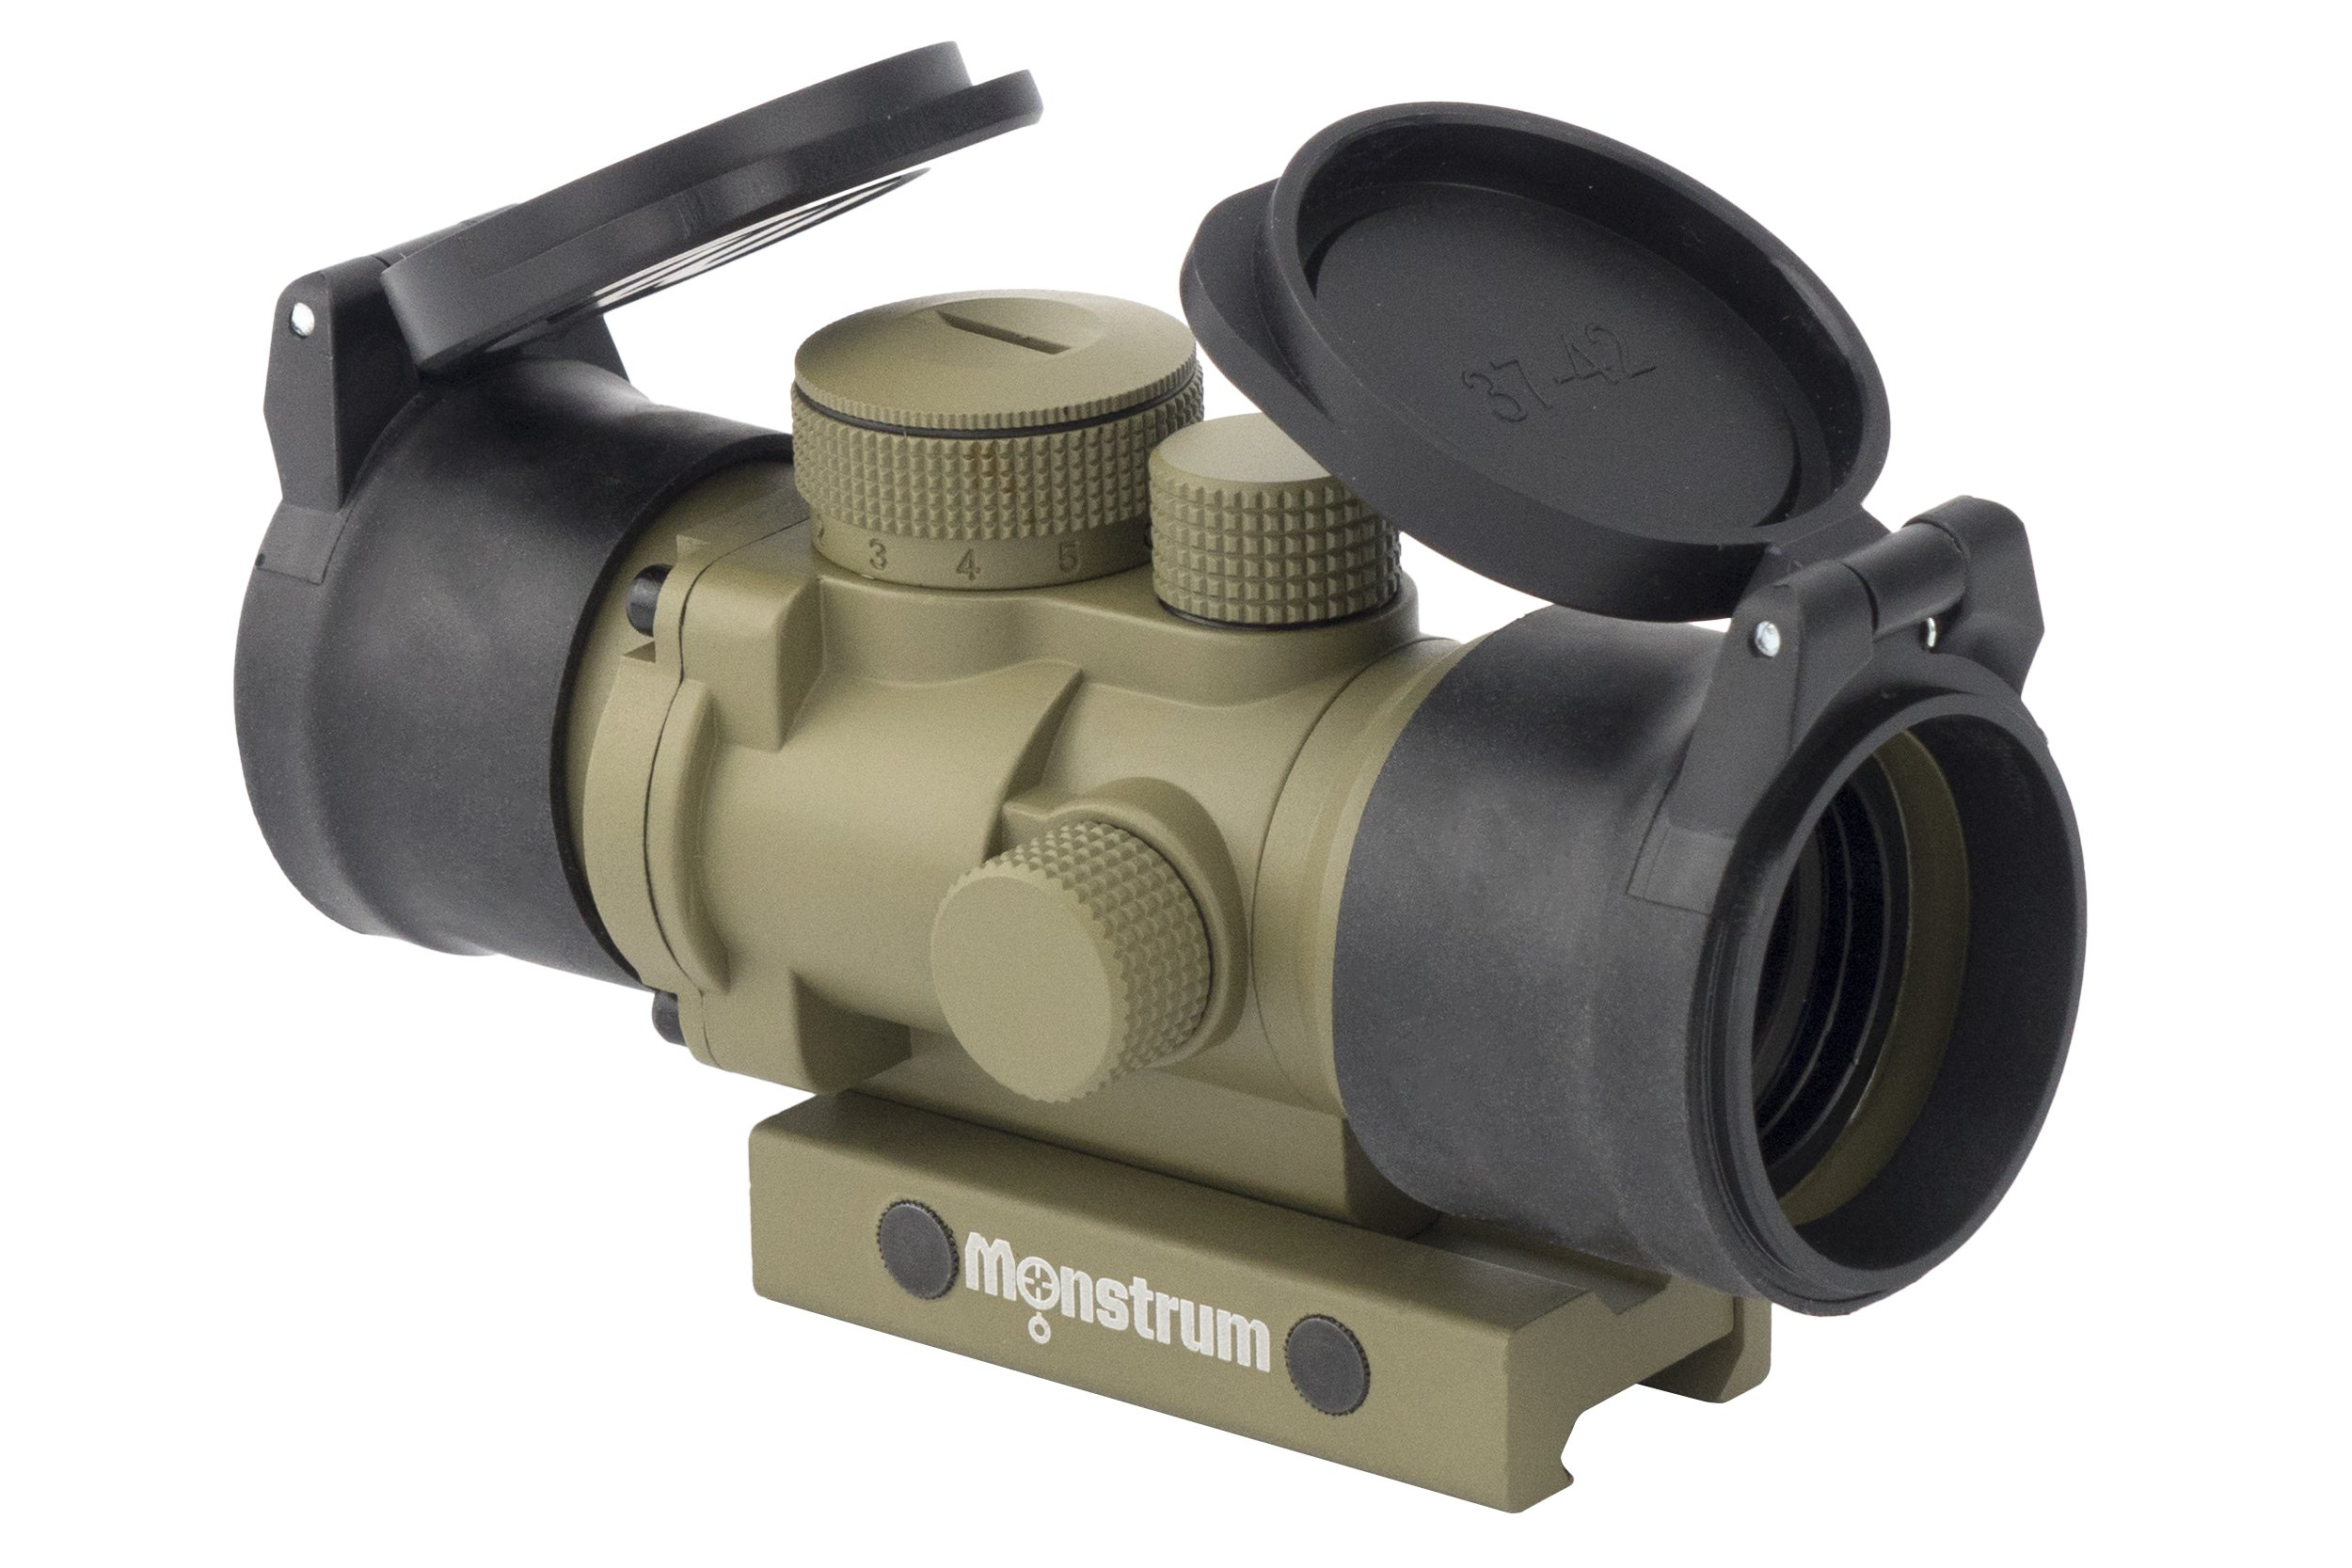 Monstrum Tactical S232P 2x Magnification Prism Scope (Flat Dark Earth | with Flip Up Lens Covers)